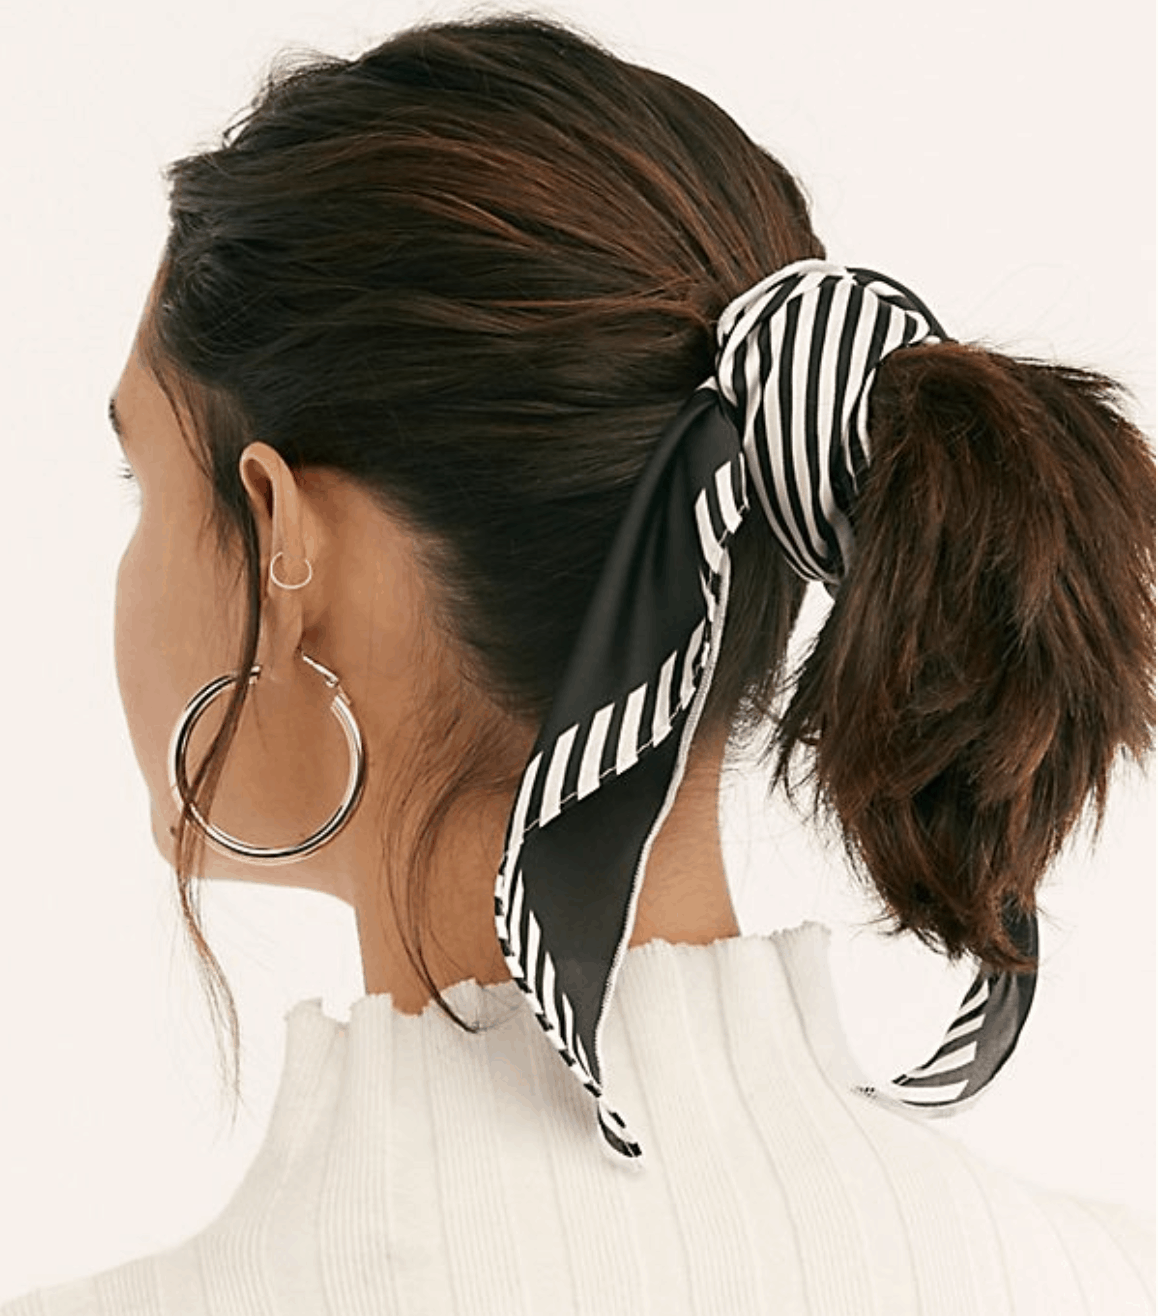 Hair Scarves Under $20 // Summer Trend Alert